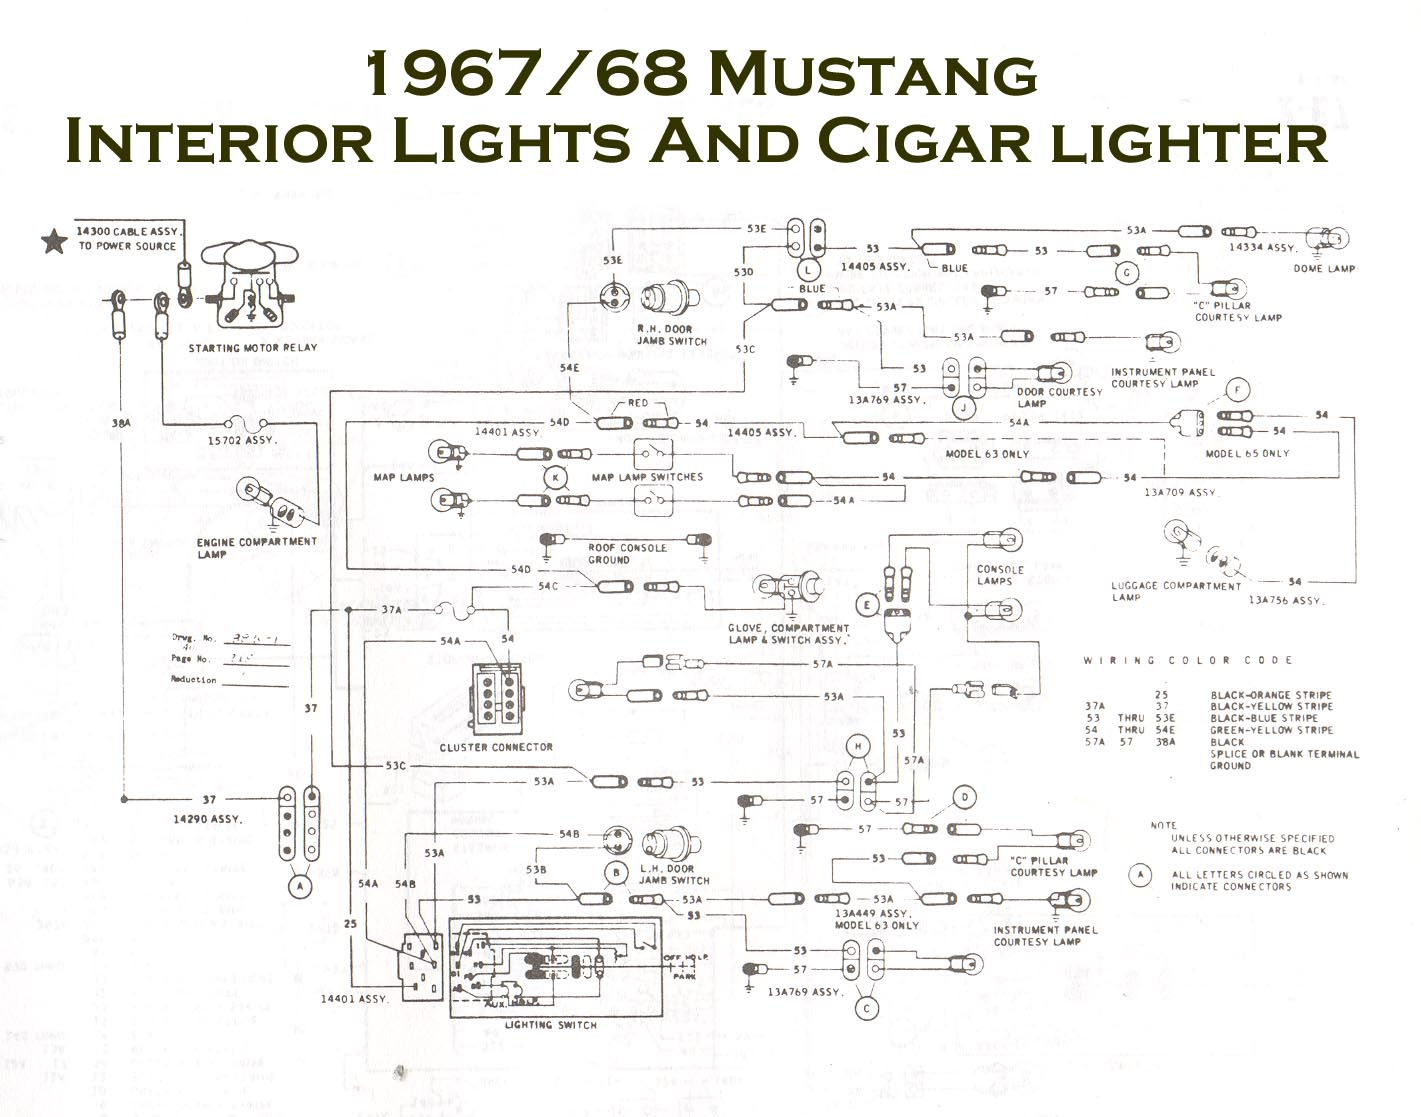 2014 mustang headlight wiring diagram